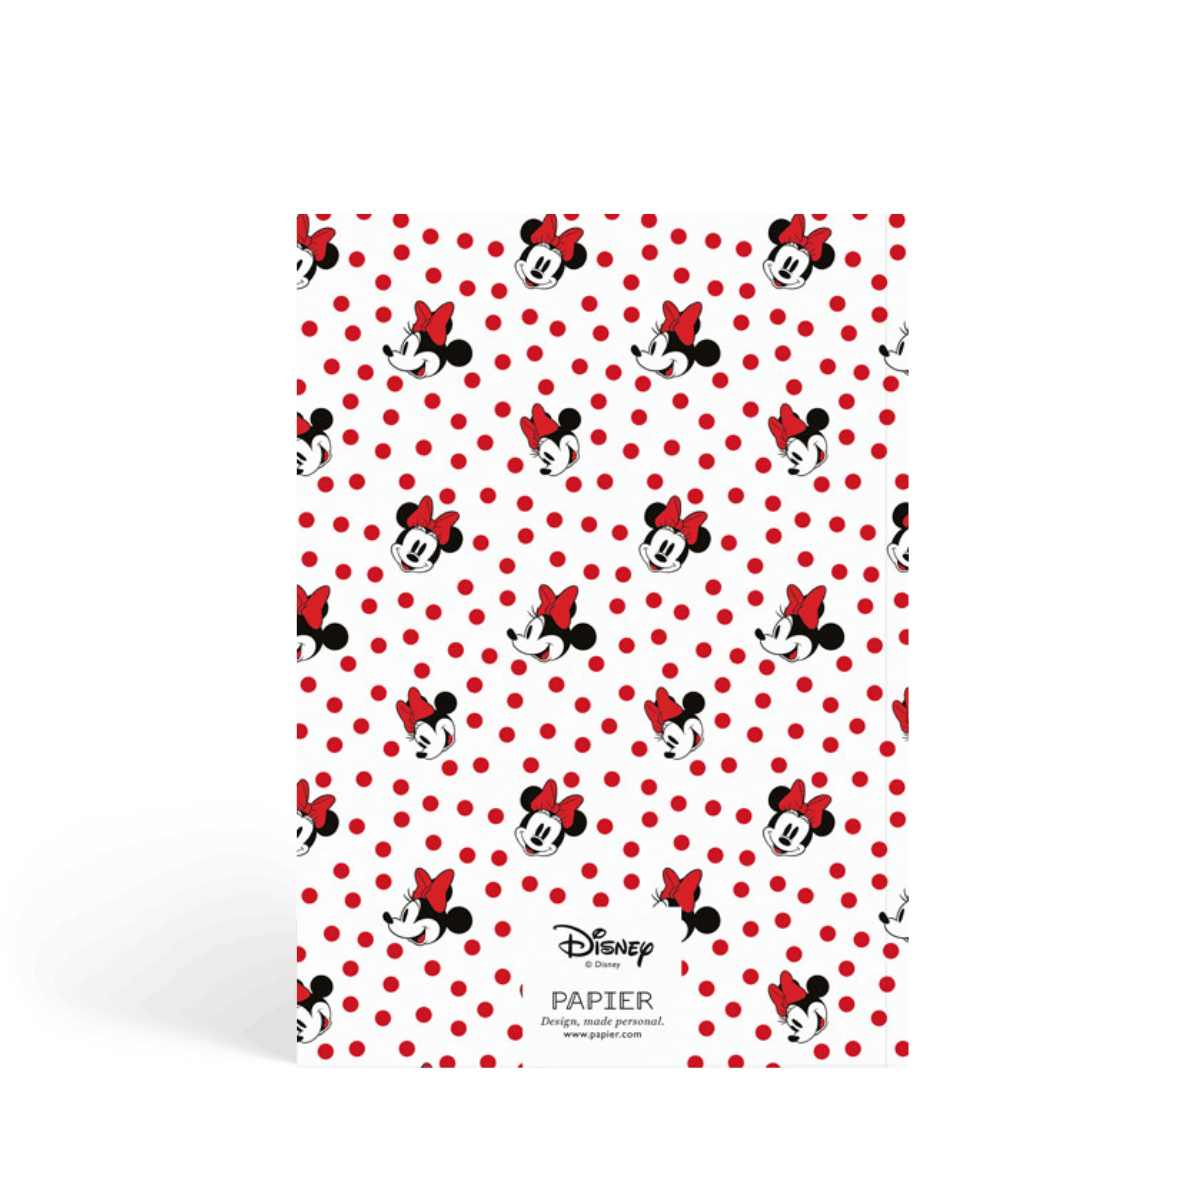 Https%3a%2f%2fwww.papier.com%2fproduct image%2f56023%2f5%2fminnie mouse 13460 rueckseite 1568024670.png?ixlib=rb 1.1